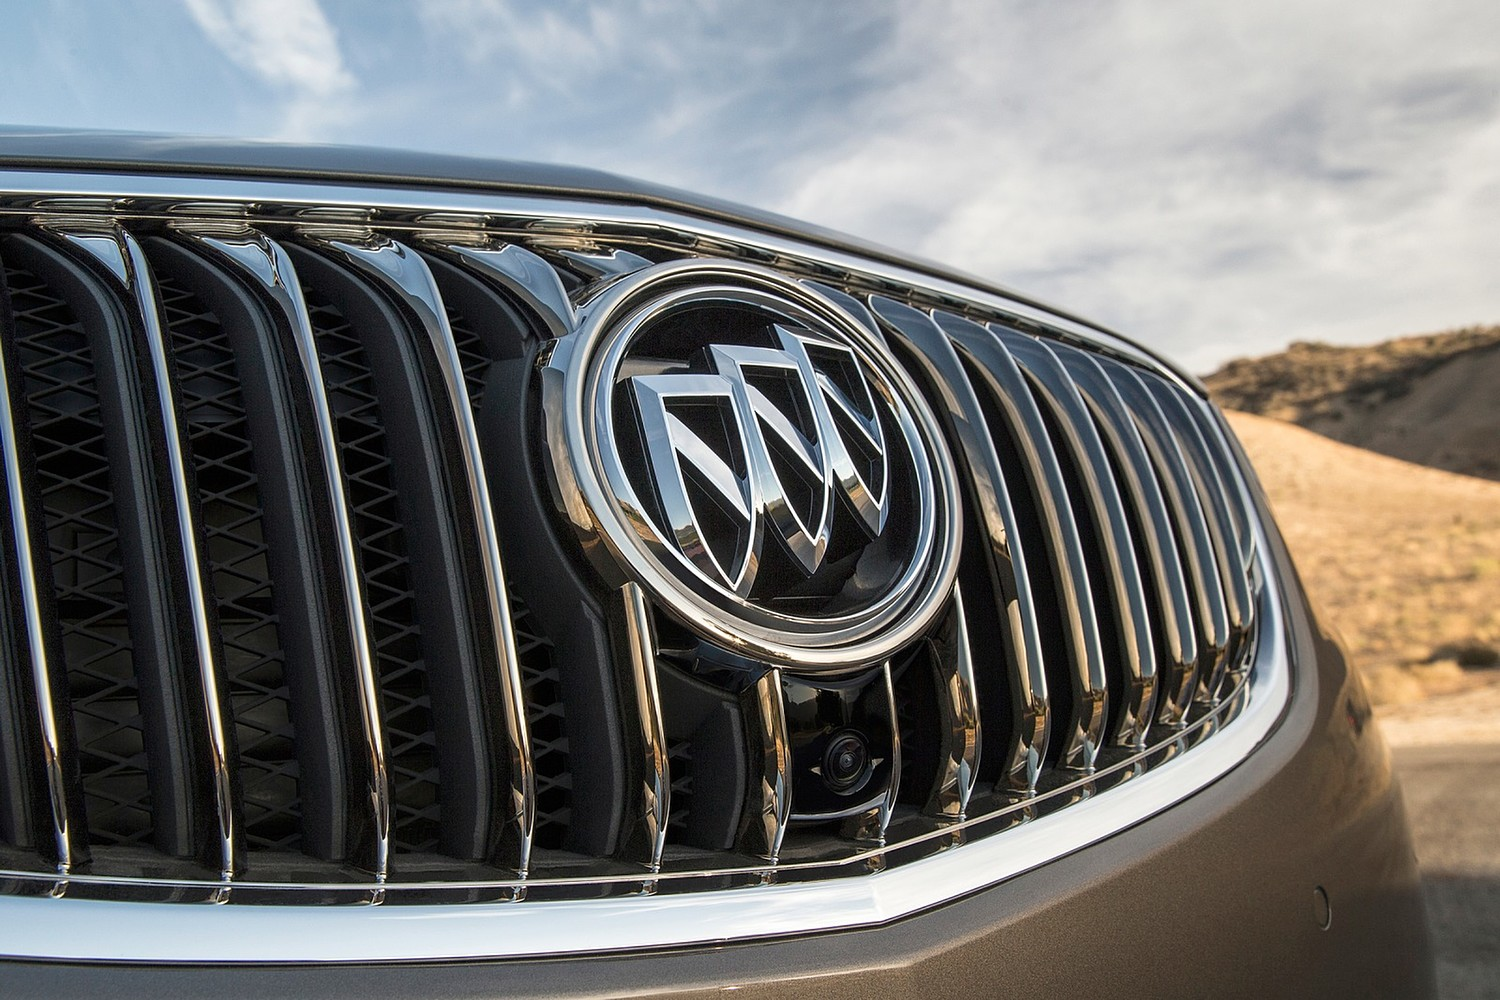 Buick Envision Premium II 4dr SUV Front Badge (2016 model year shown)